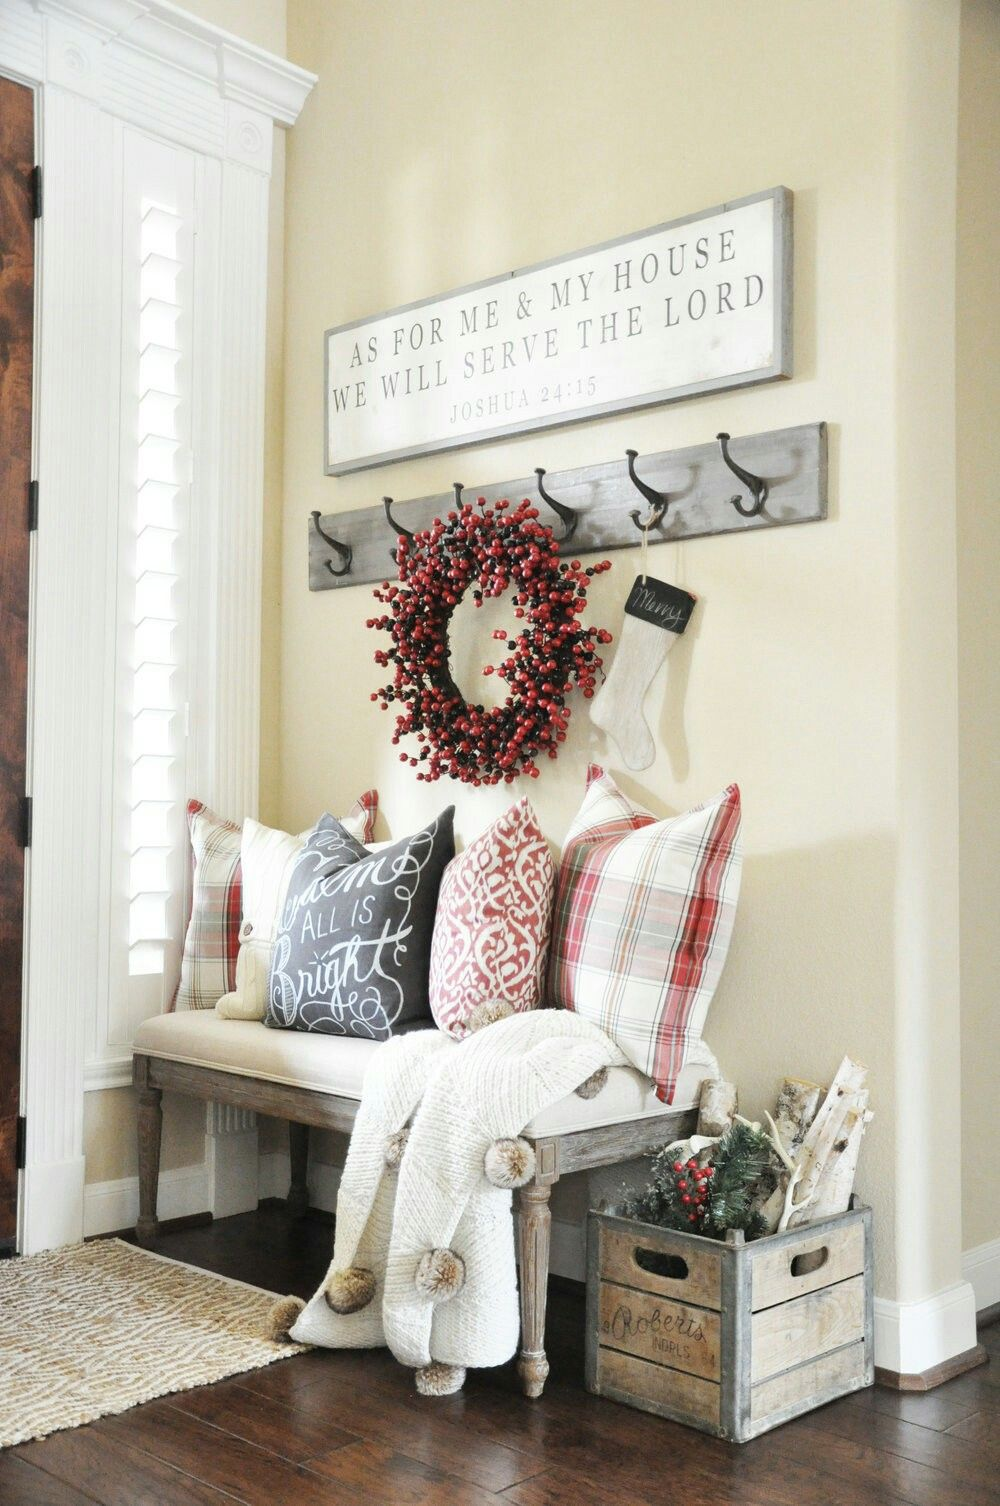 Pin by Brooke Schwantes on Home Decorating Ideas | Pinterest ...